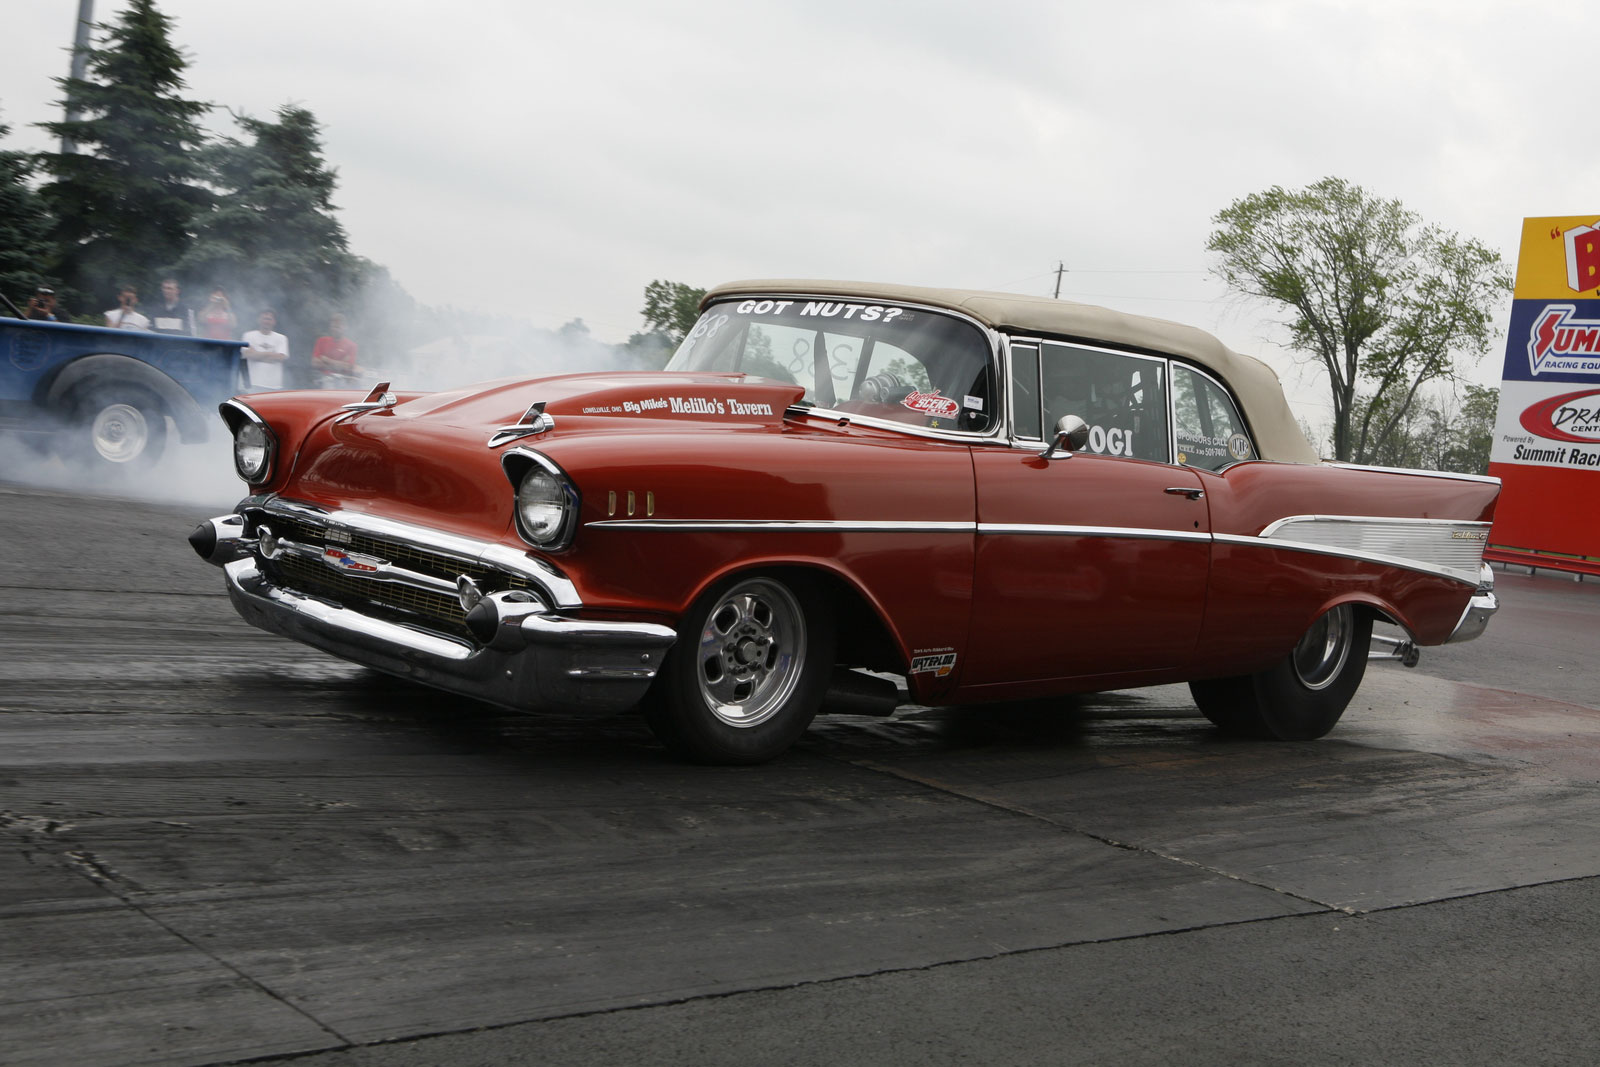 Sucp_1006w_08 Super_chevy_show_2010 Norwalk_ohio